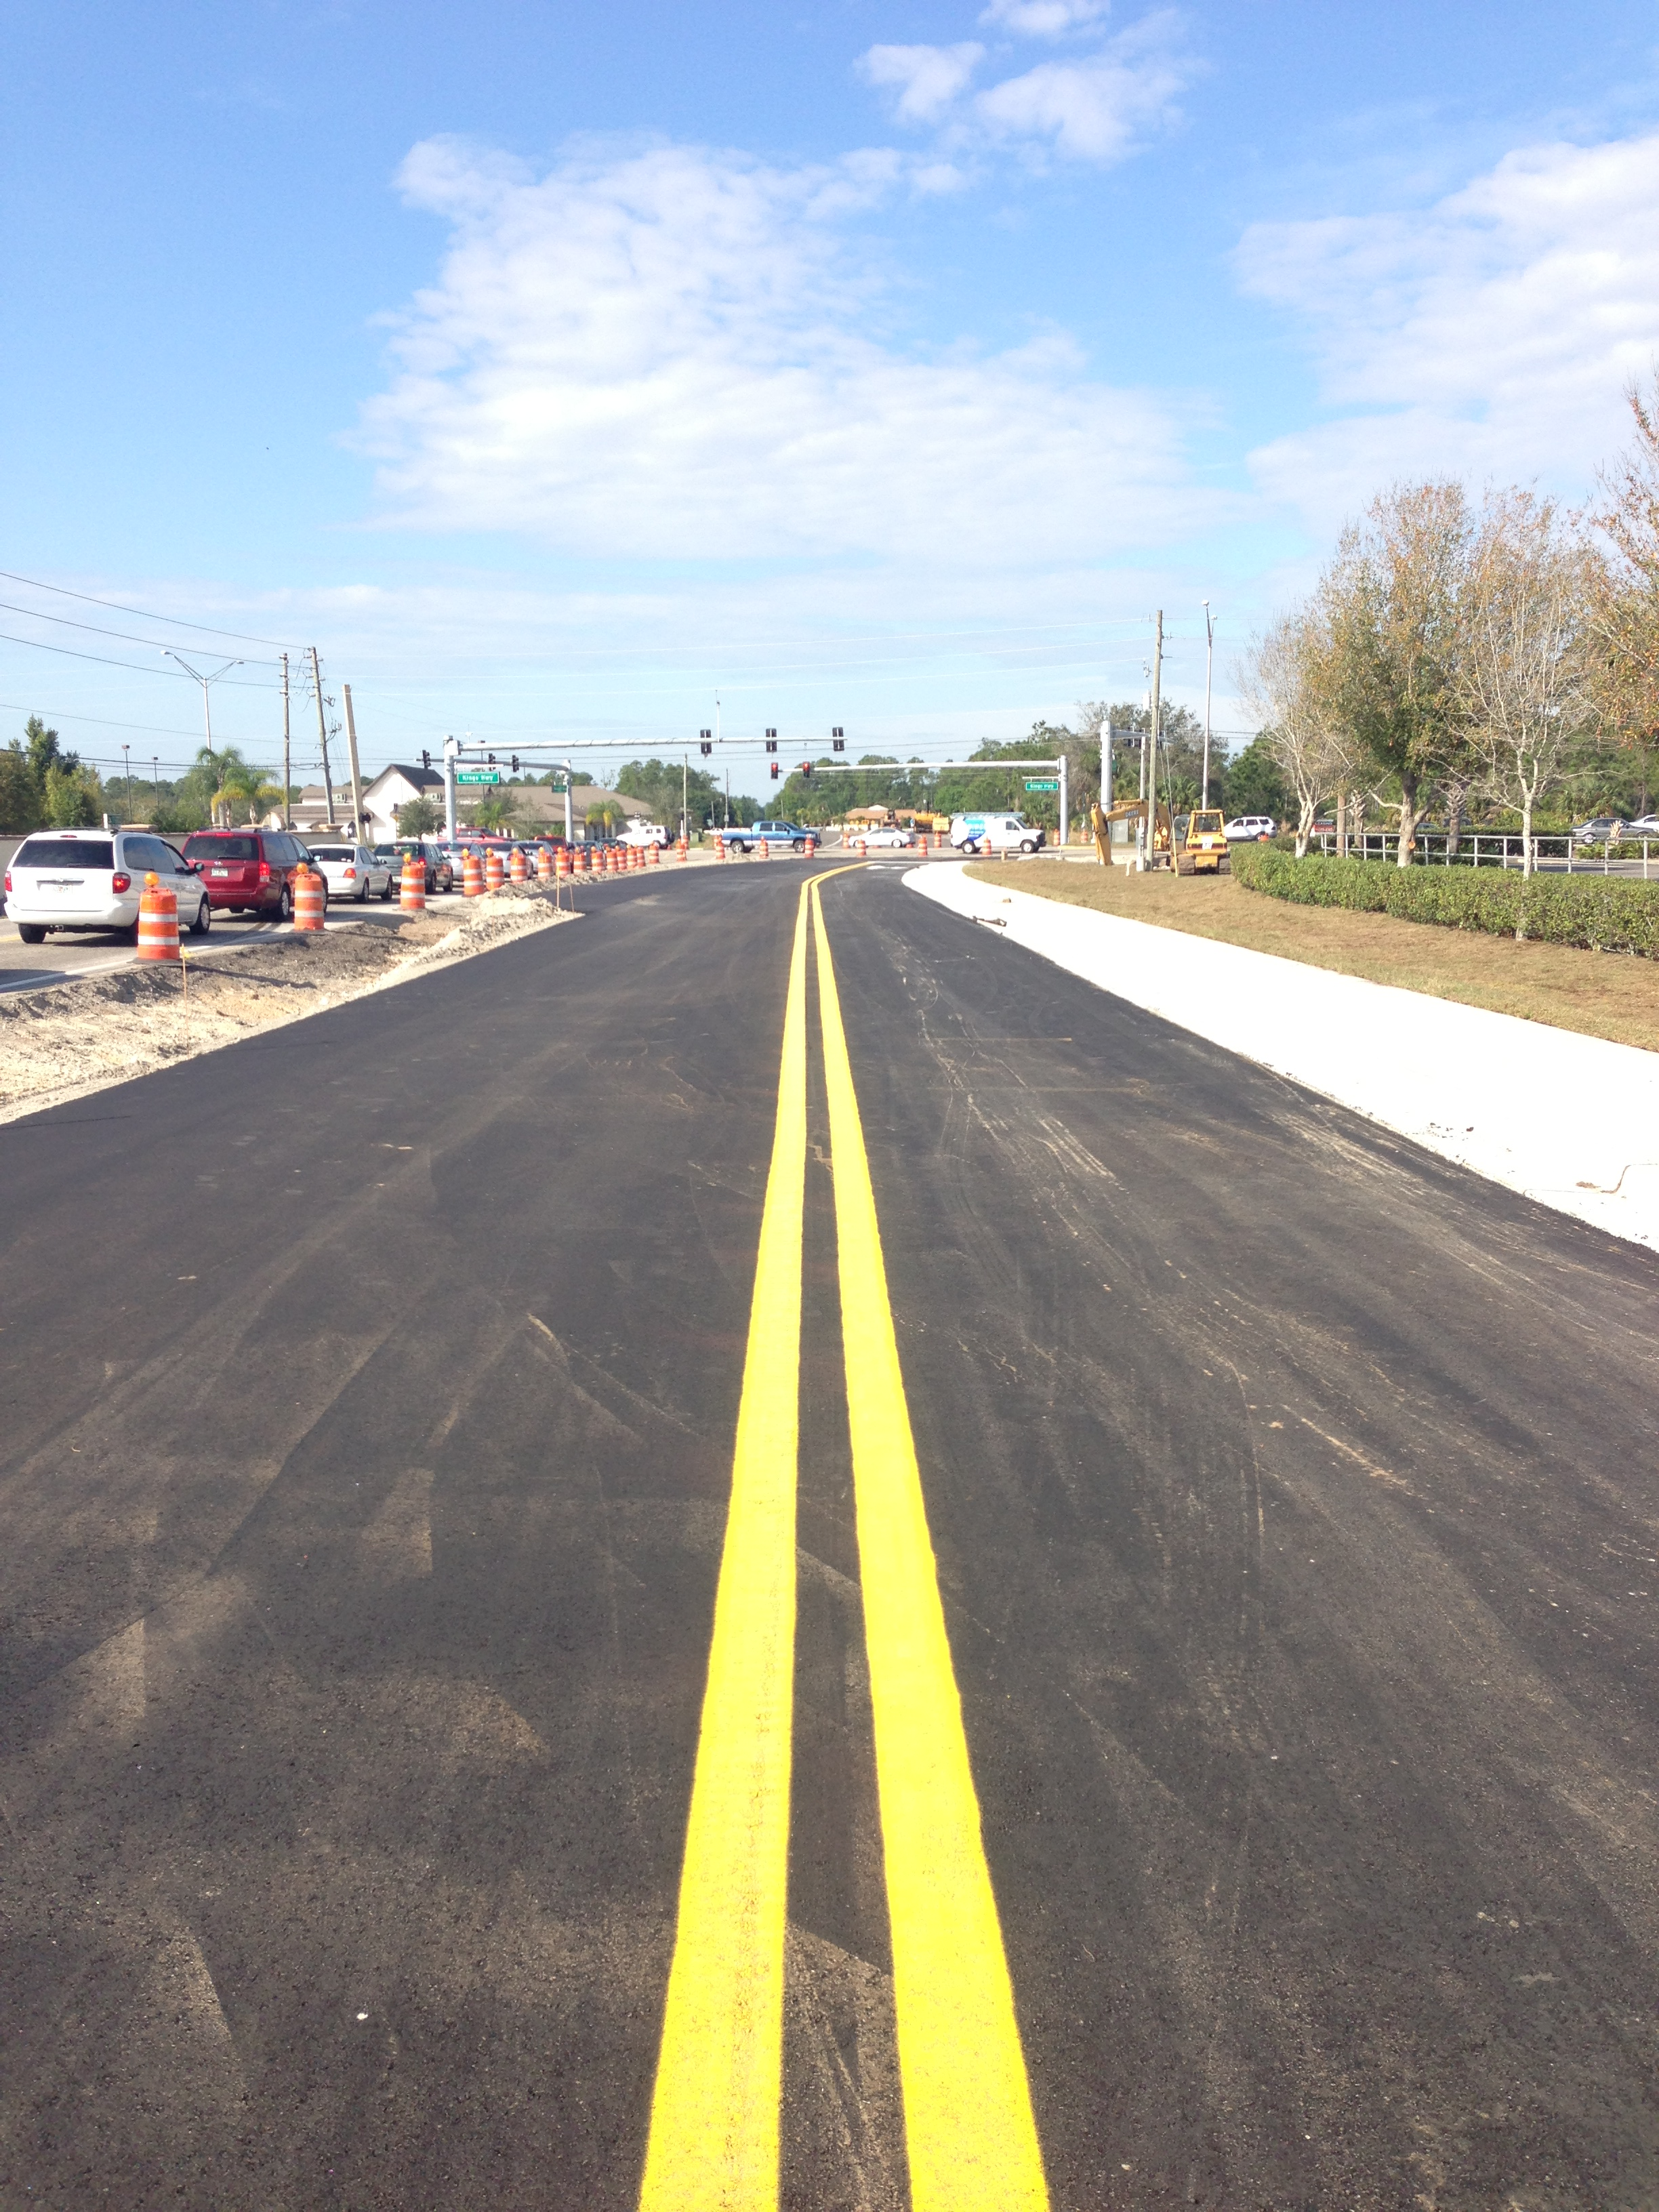 Rampart Blvd Phase 2, Port Charlotte, Florida-Construct roadway expansion